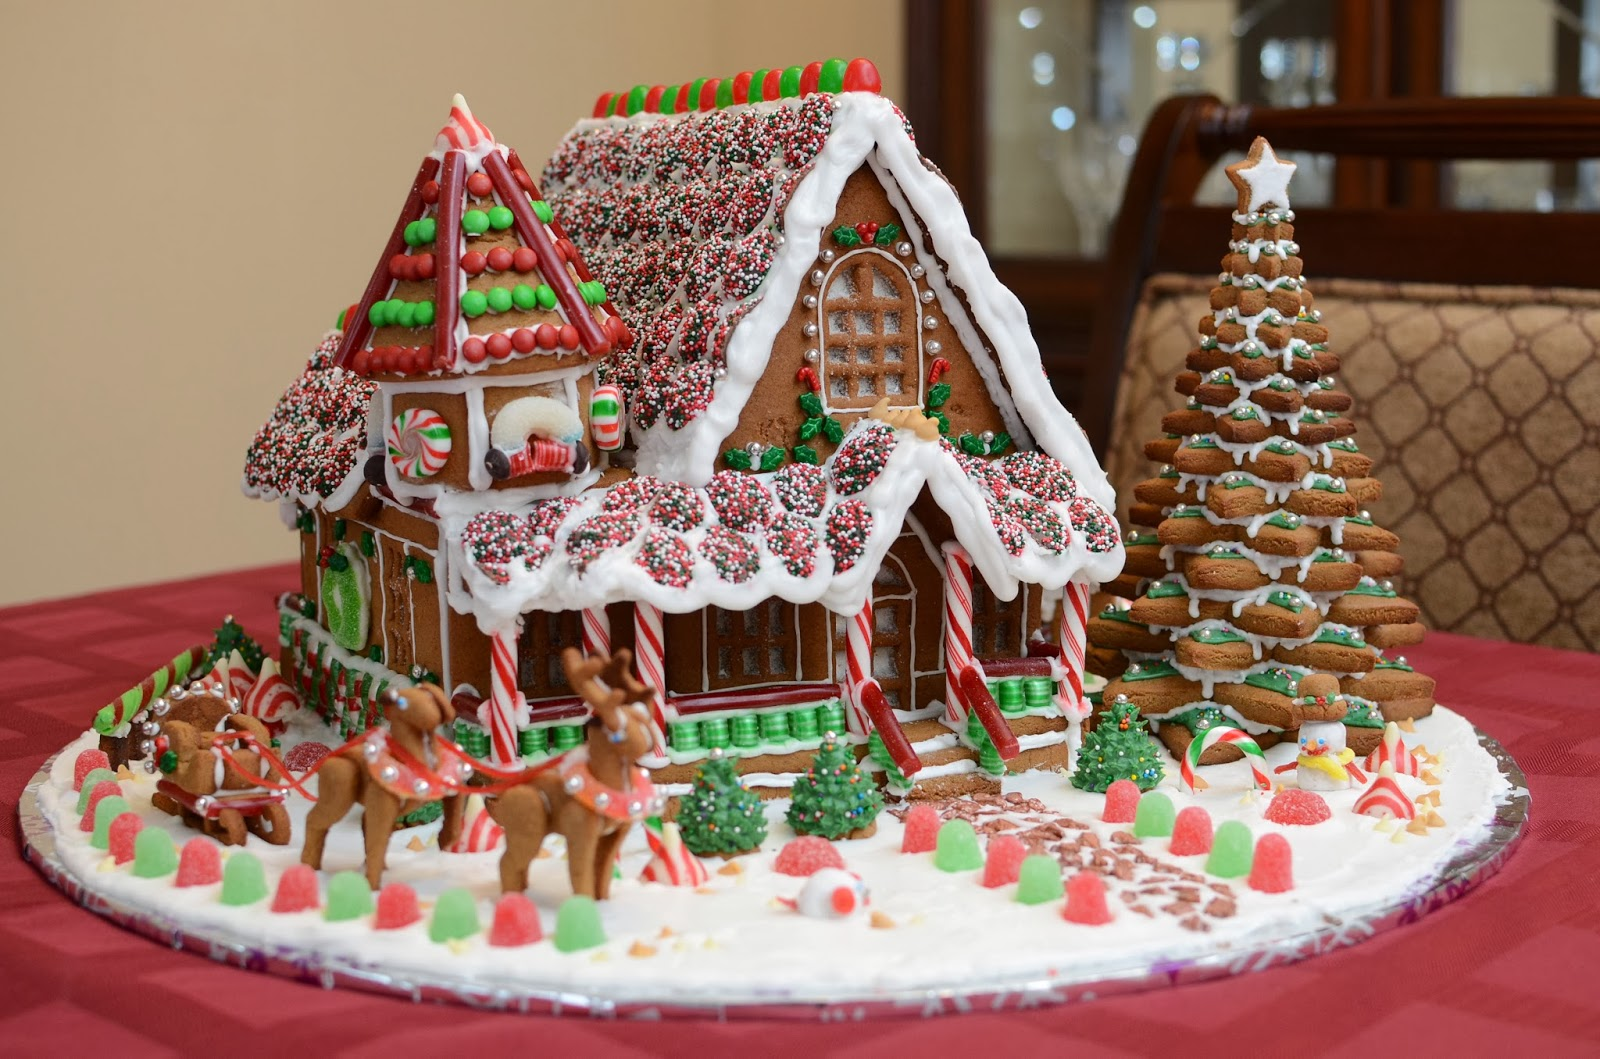 Gastronomic relevancy gingerbread house but a gingerbread house isnt exactly part of the traditional chinese culture and so its taken me a full 17 years to realize the dream hahaha malvernweather Choice Image